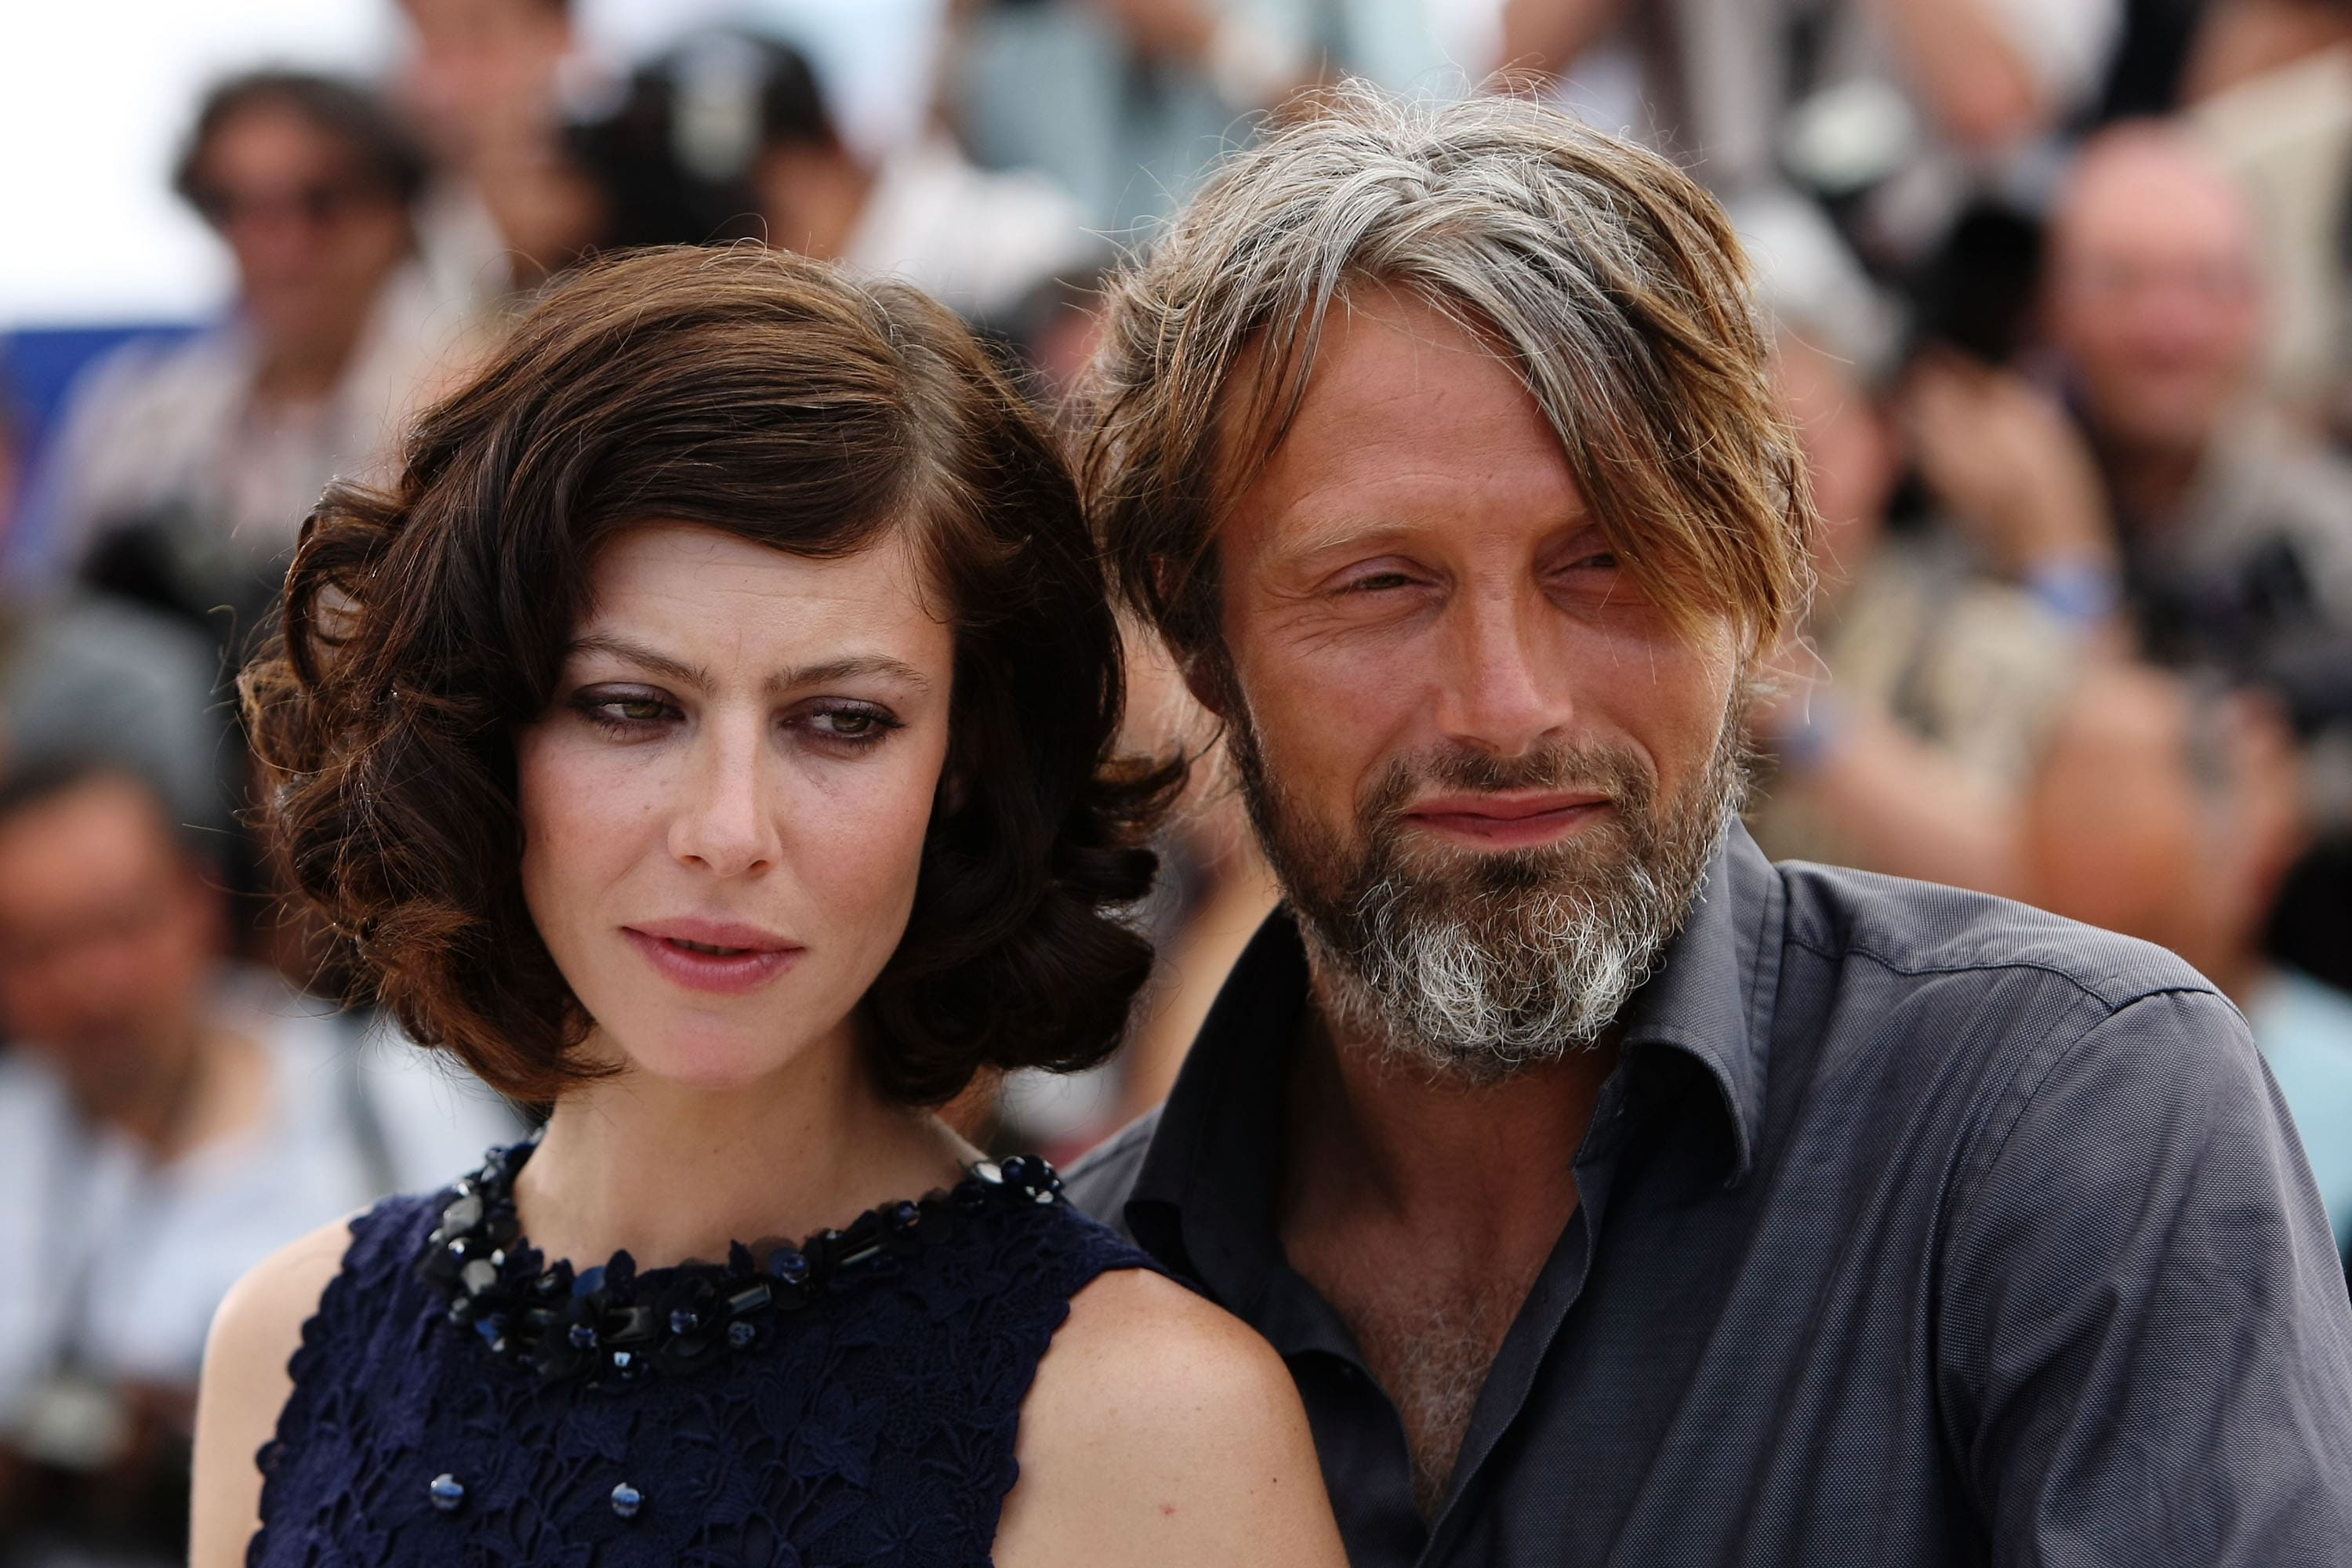 1615371249260_Cannes2009.jpg - L'attrice russa Anna Mouglalis e l'attore danese Mads Mikkelsen a Cannes nel 2009